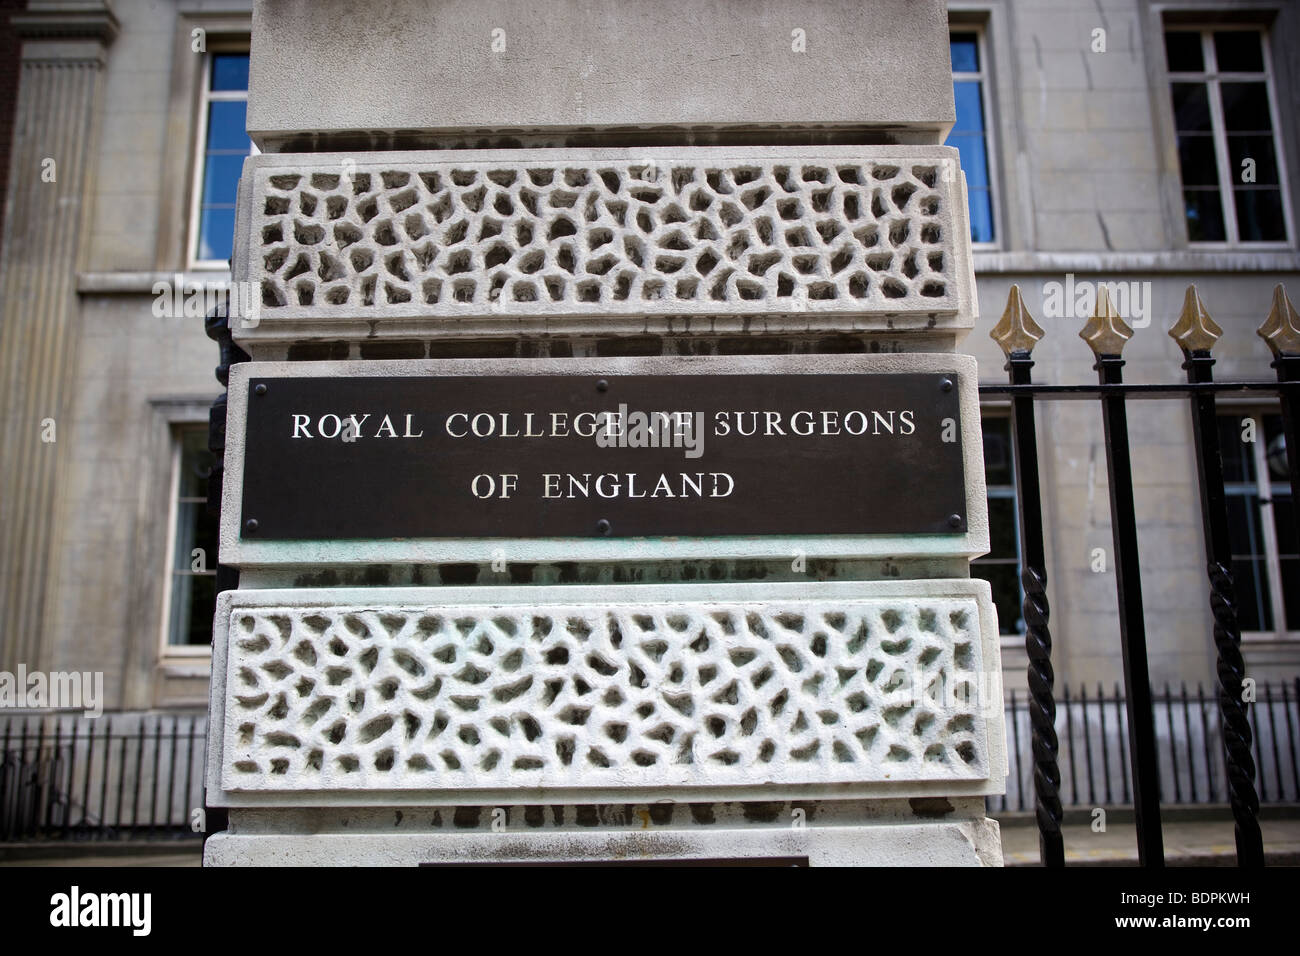 Royal College of Surgeons Lincolns Inn Fields London - Stock Image